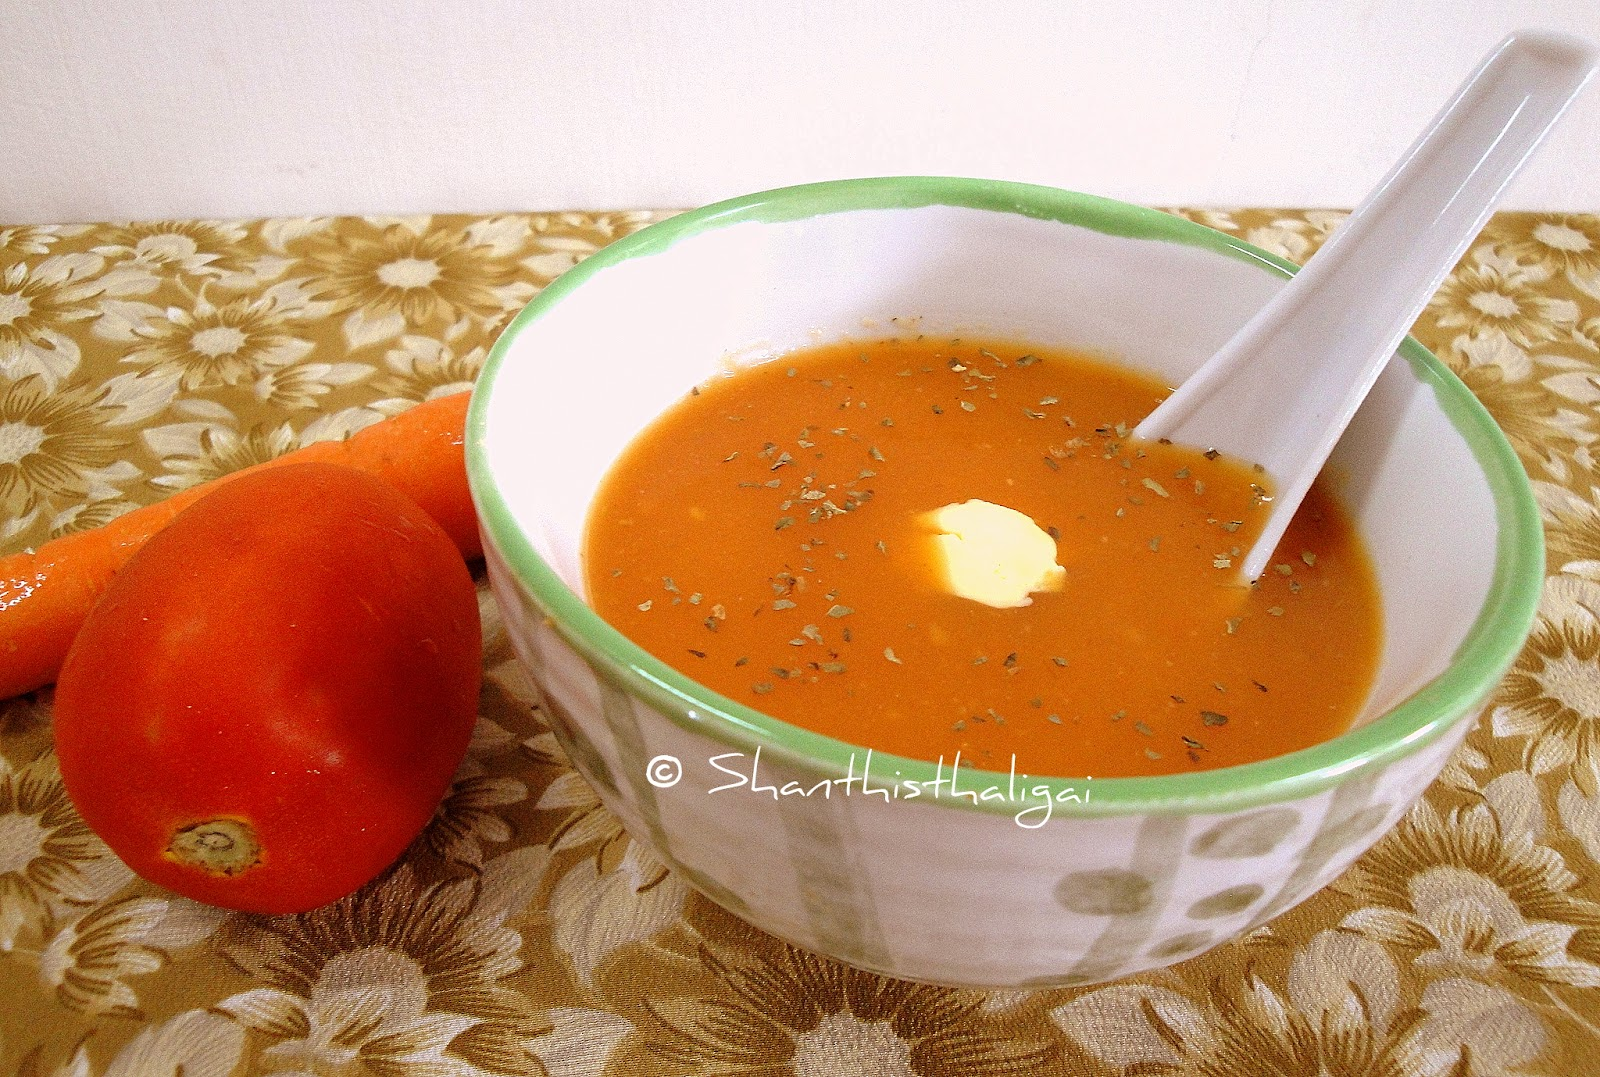 Herbed carrot tomato soup, Carrot tomato soup recipe, How to make herbed carrot tomato soup?